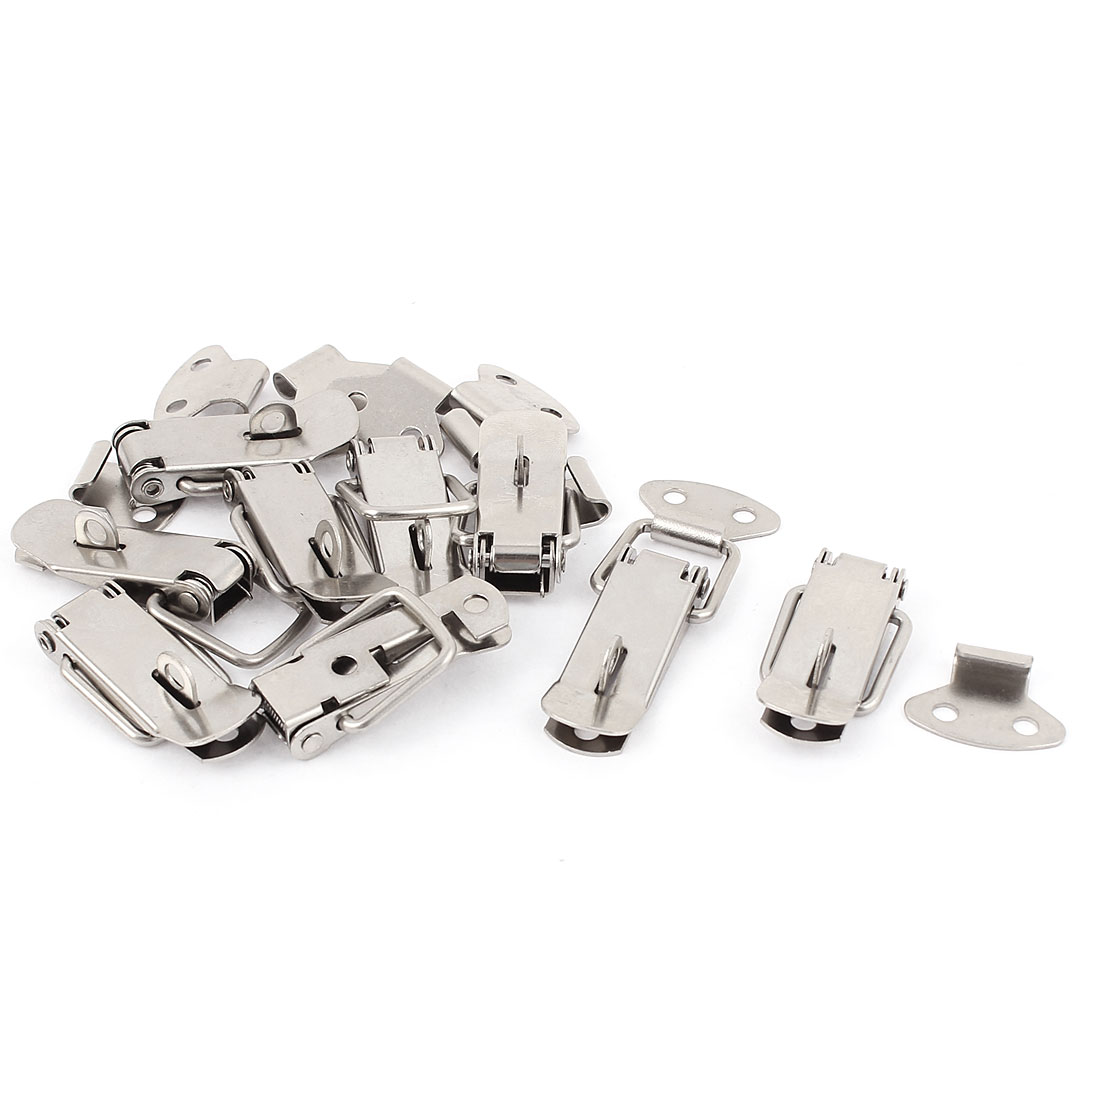 9pcs Box Chest Case Spring Loaded Draw Toggle Latch Silver Tone